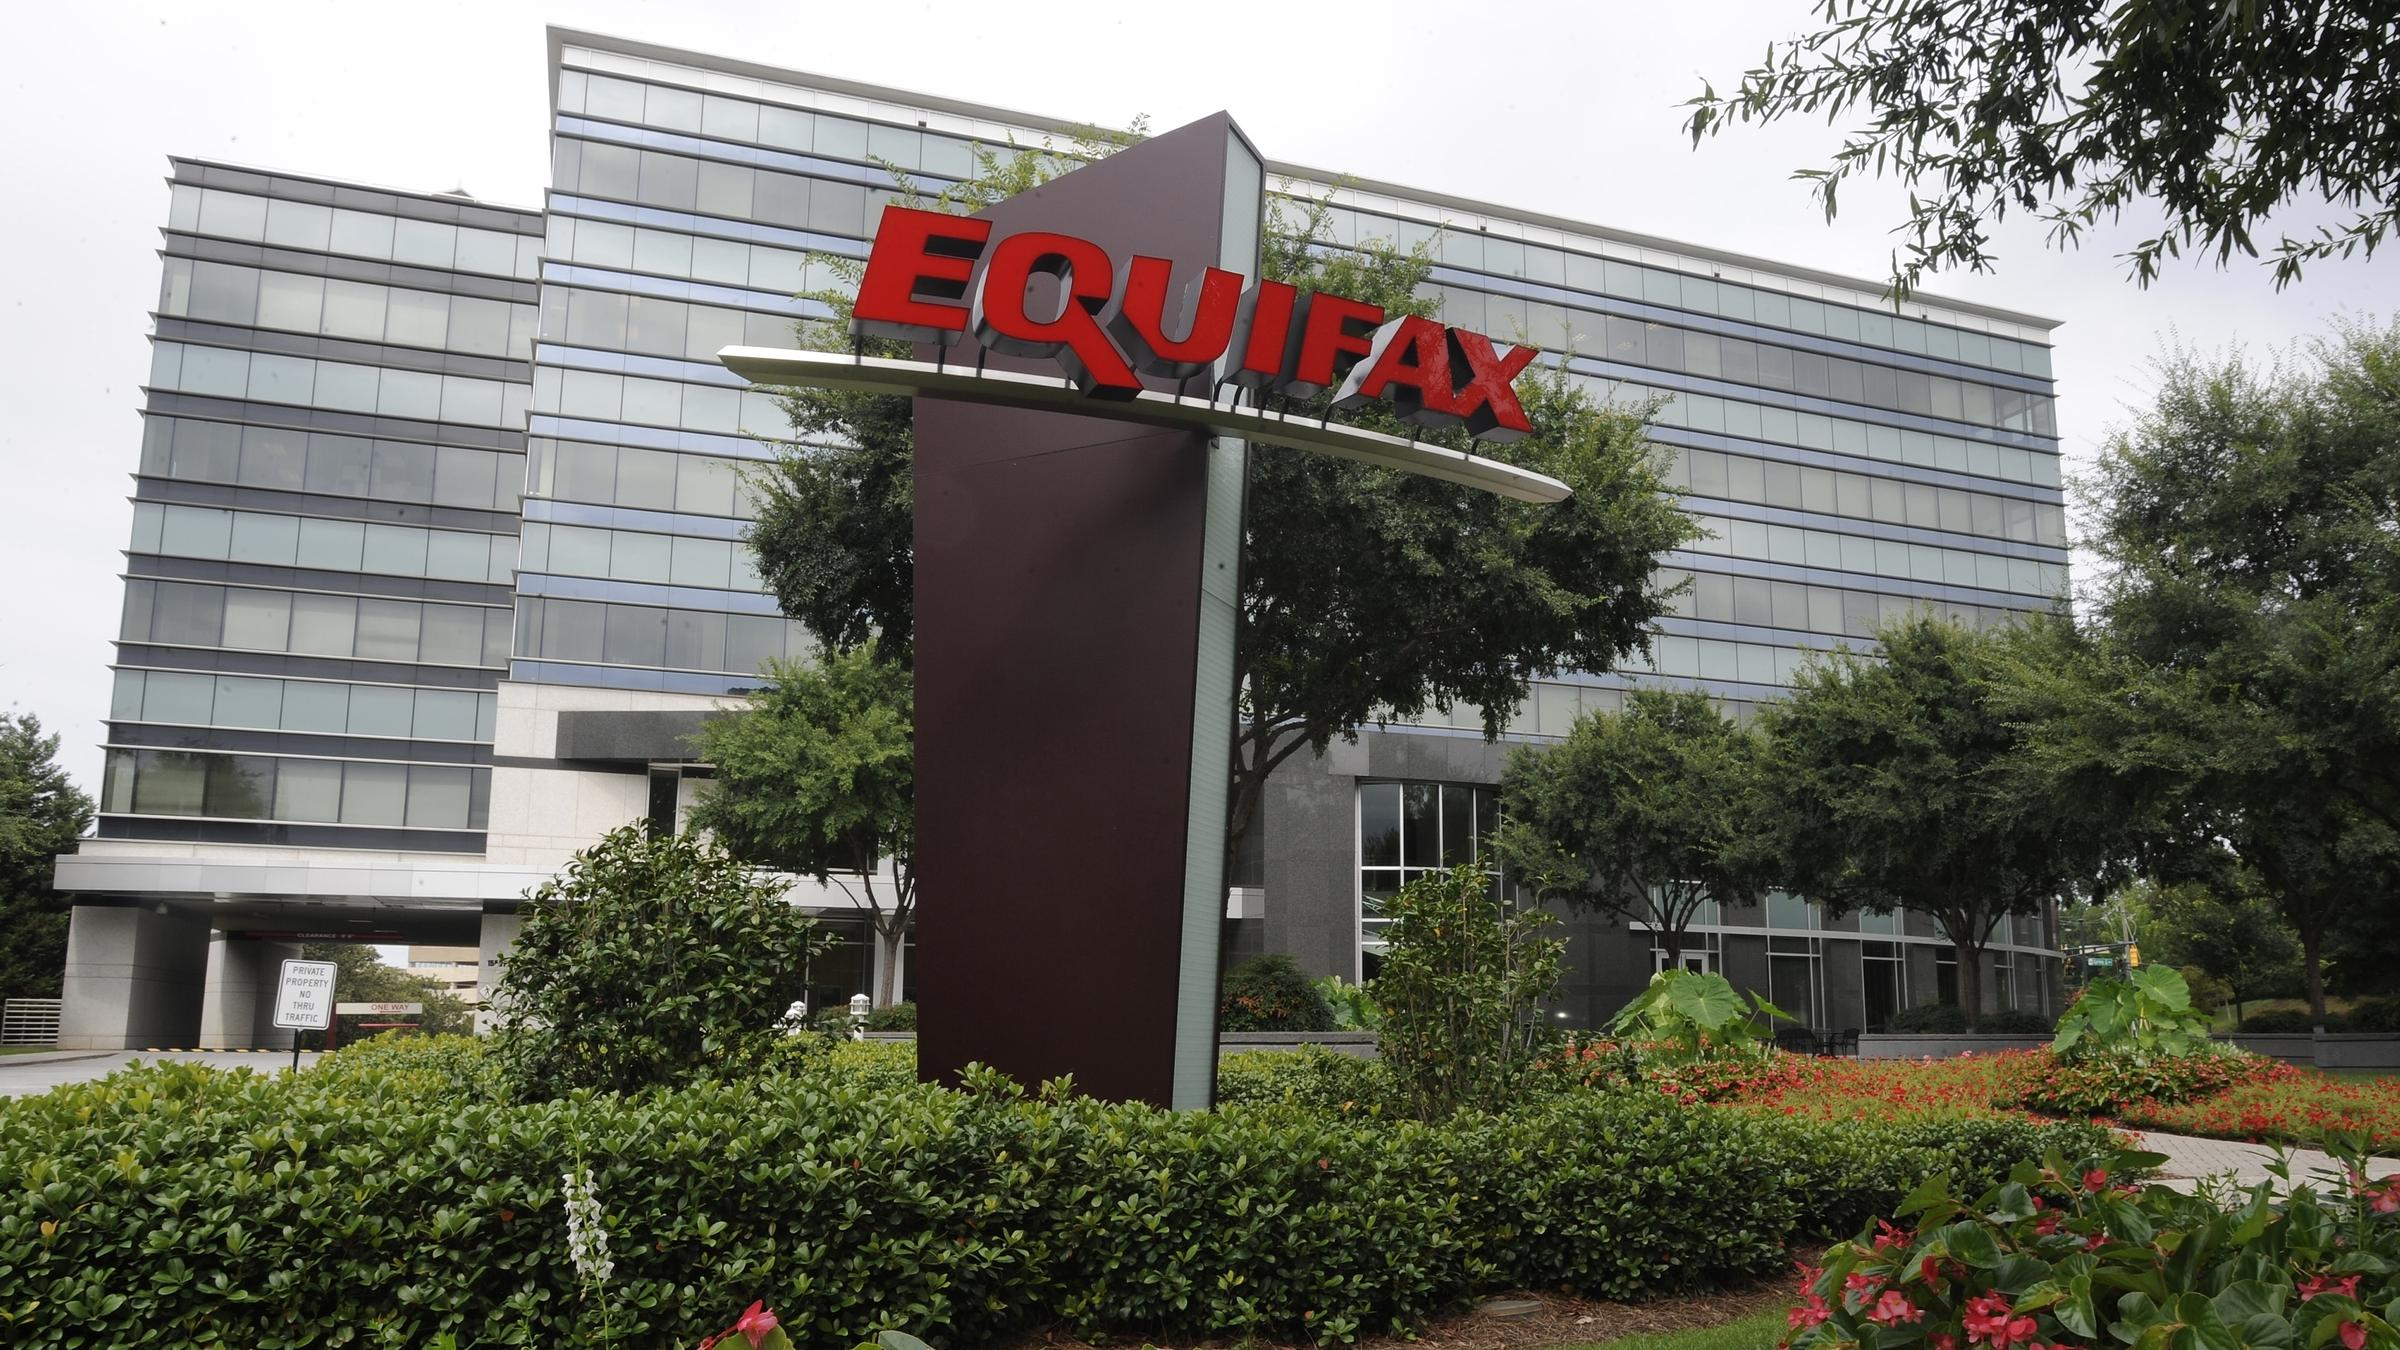 Lifelock Offers Equifax Breach Protection -- from Equifax